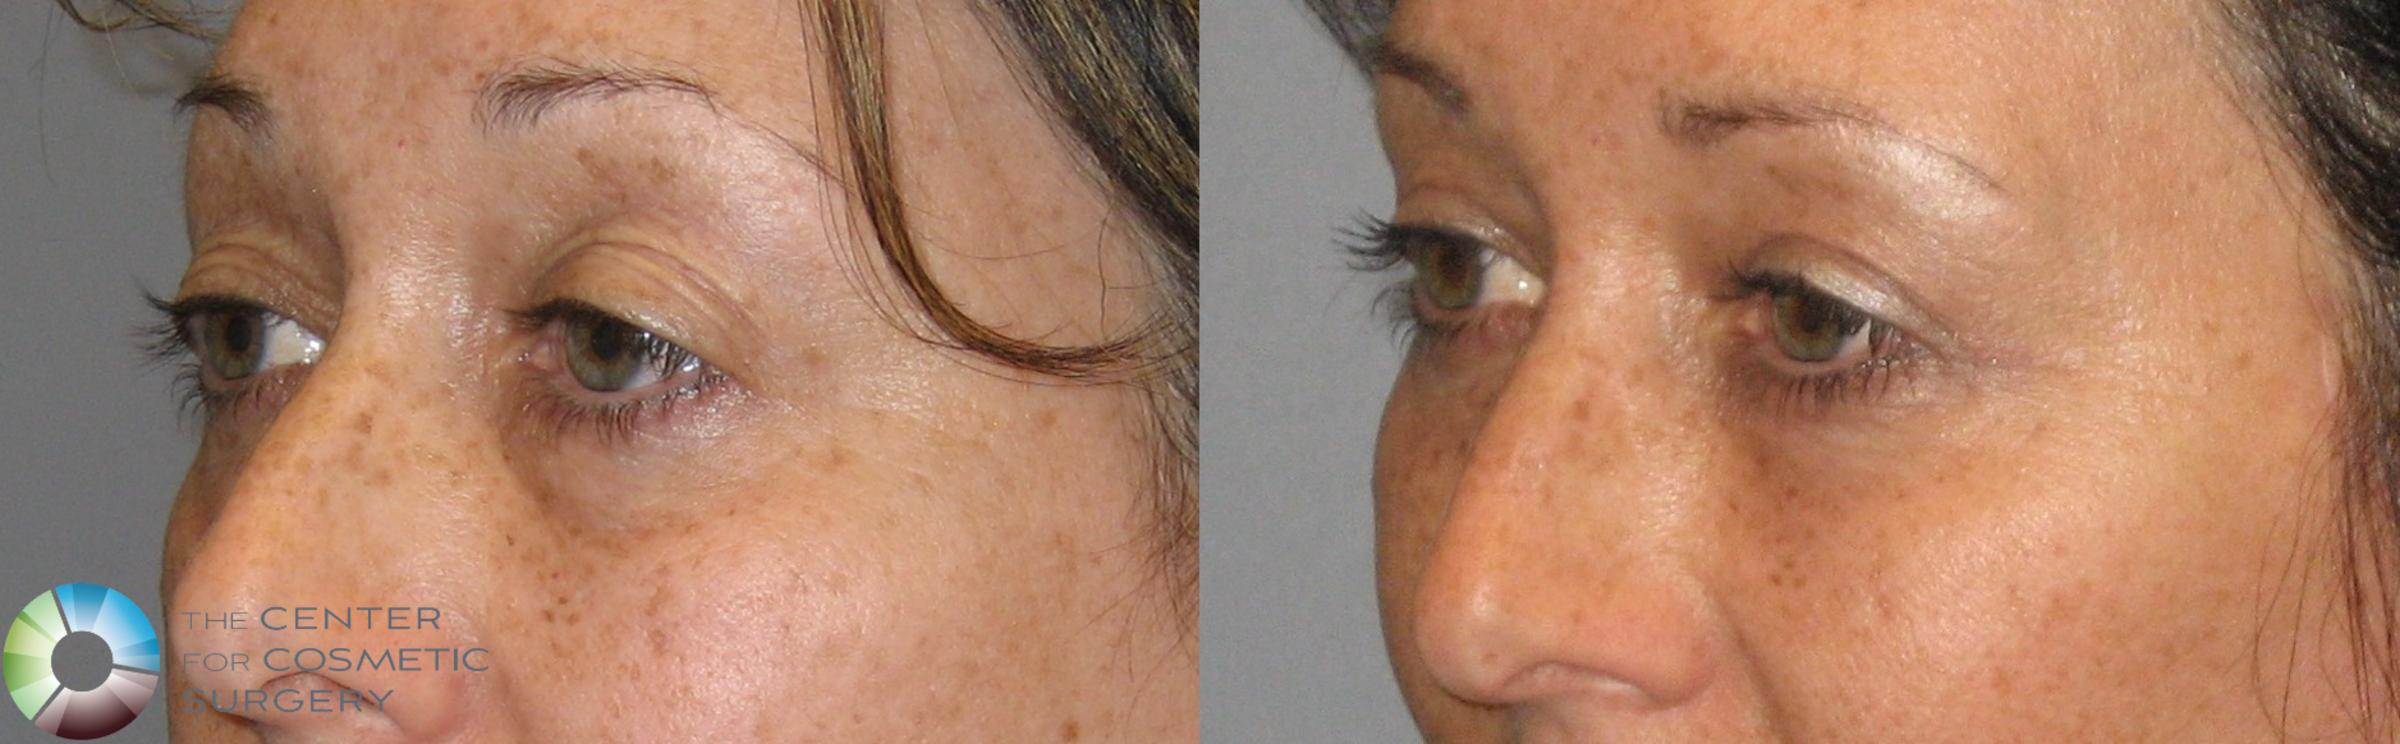 Eyelid Lift Case 161 Before & After View #2 | Golden, CO | The Center for Cosmetic Surgery